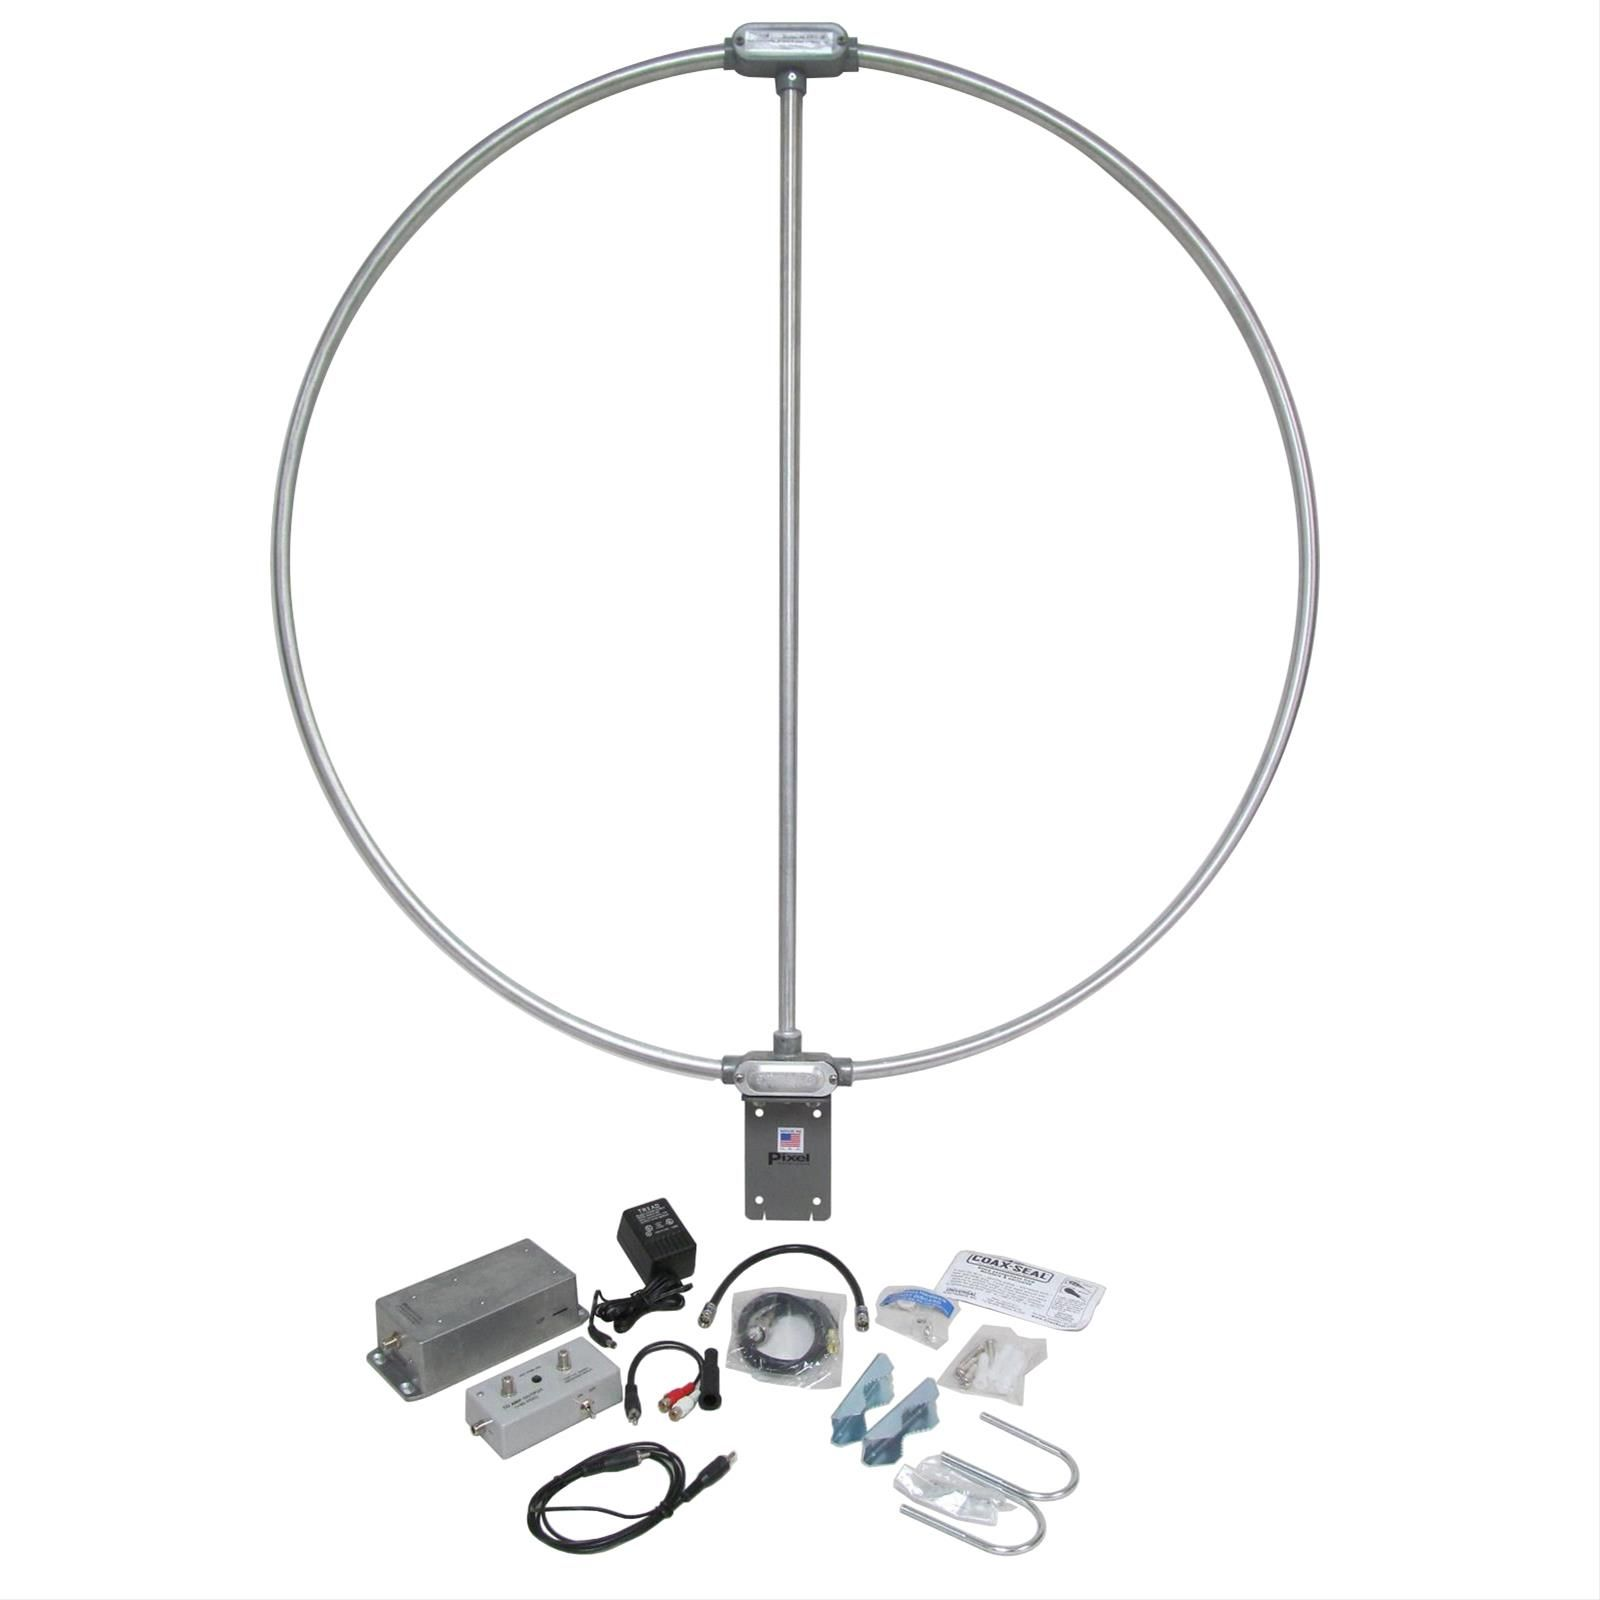 New Name Me Antenna Find Dx Engineering Rf Pro 1b